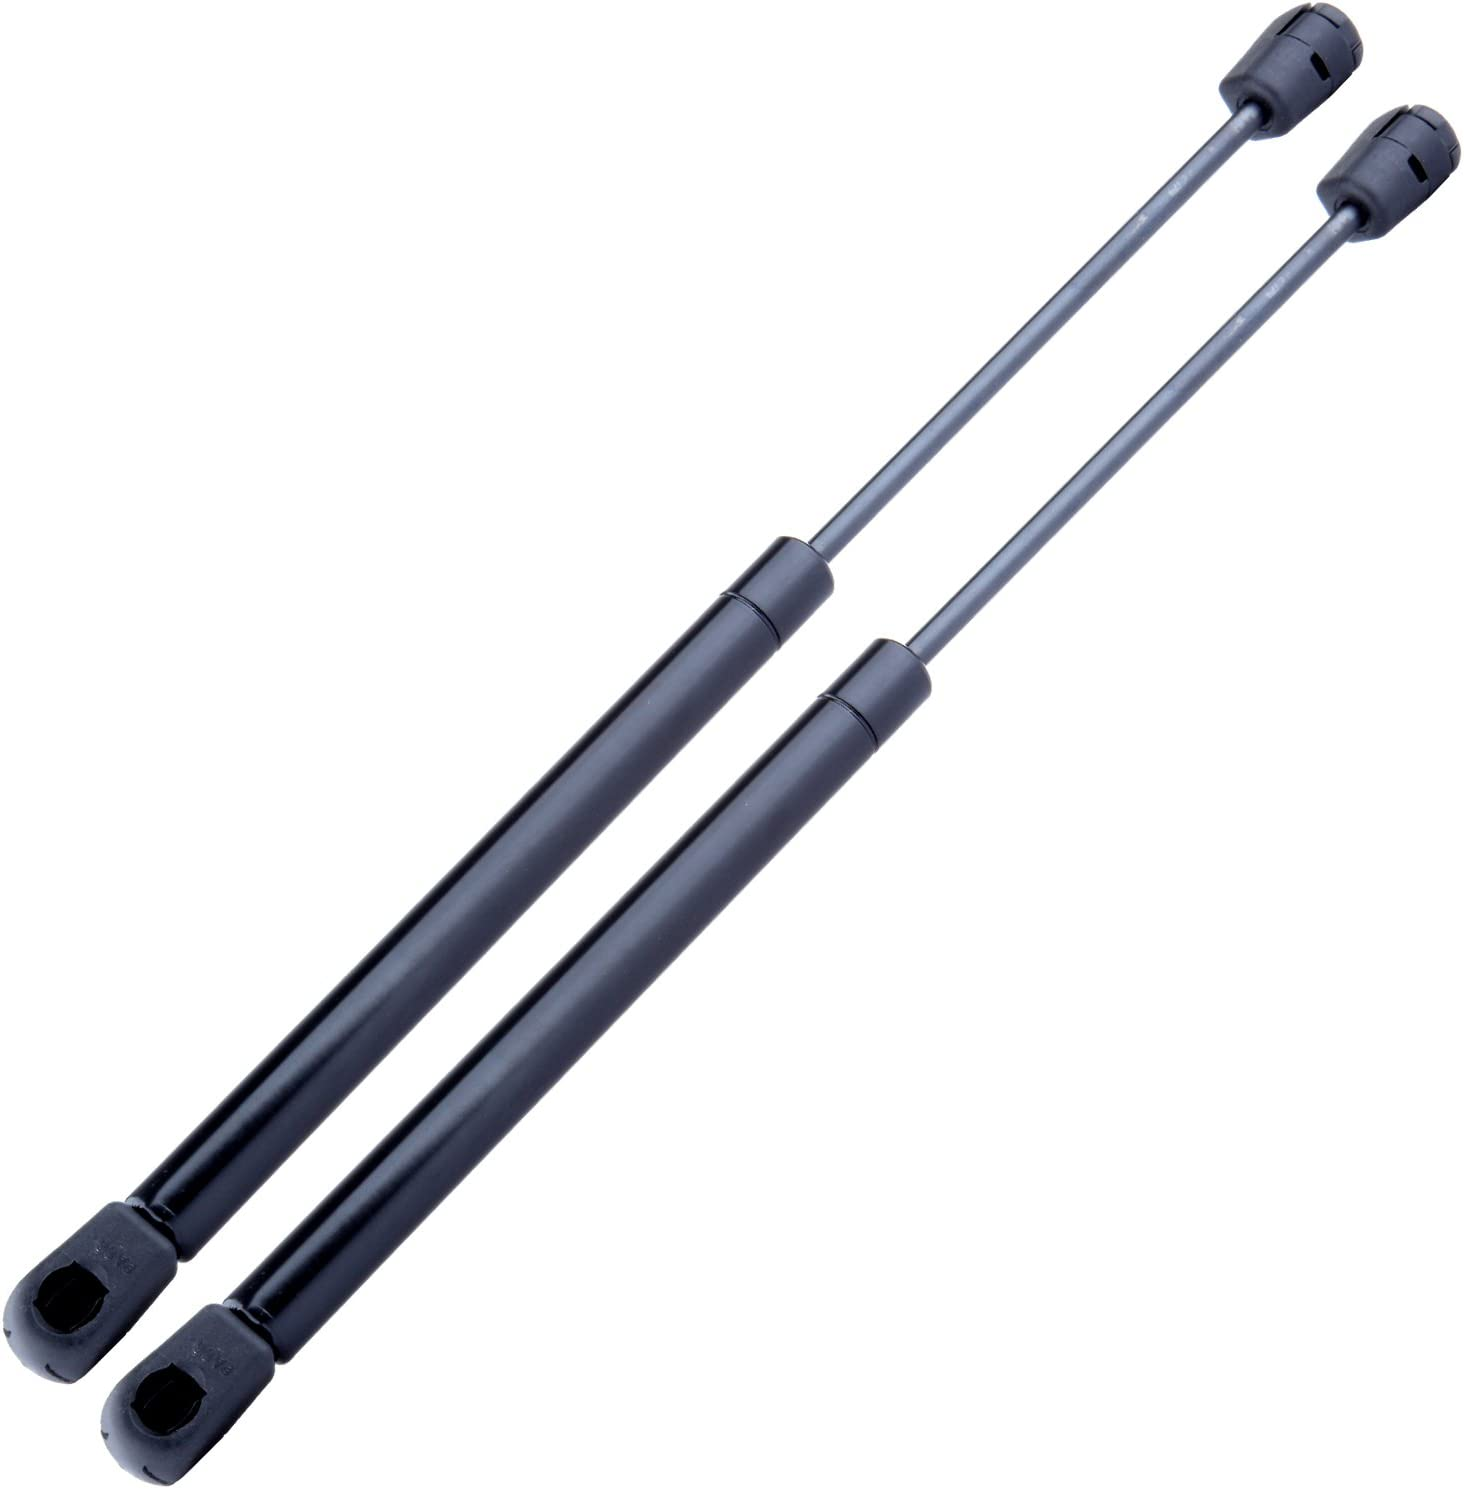 Qty 2 Front Hood Lift Supports Shocks Struts For Jeep Grand Cherokee 2005-2010